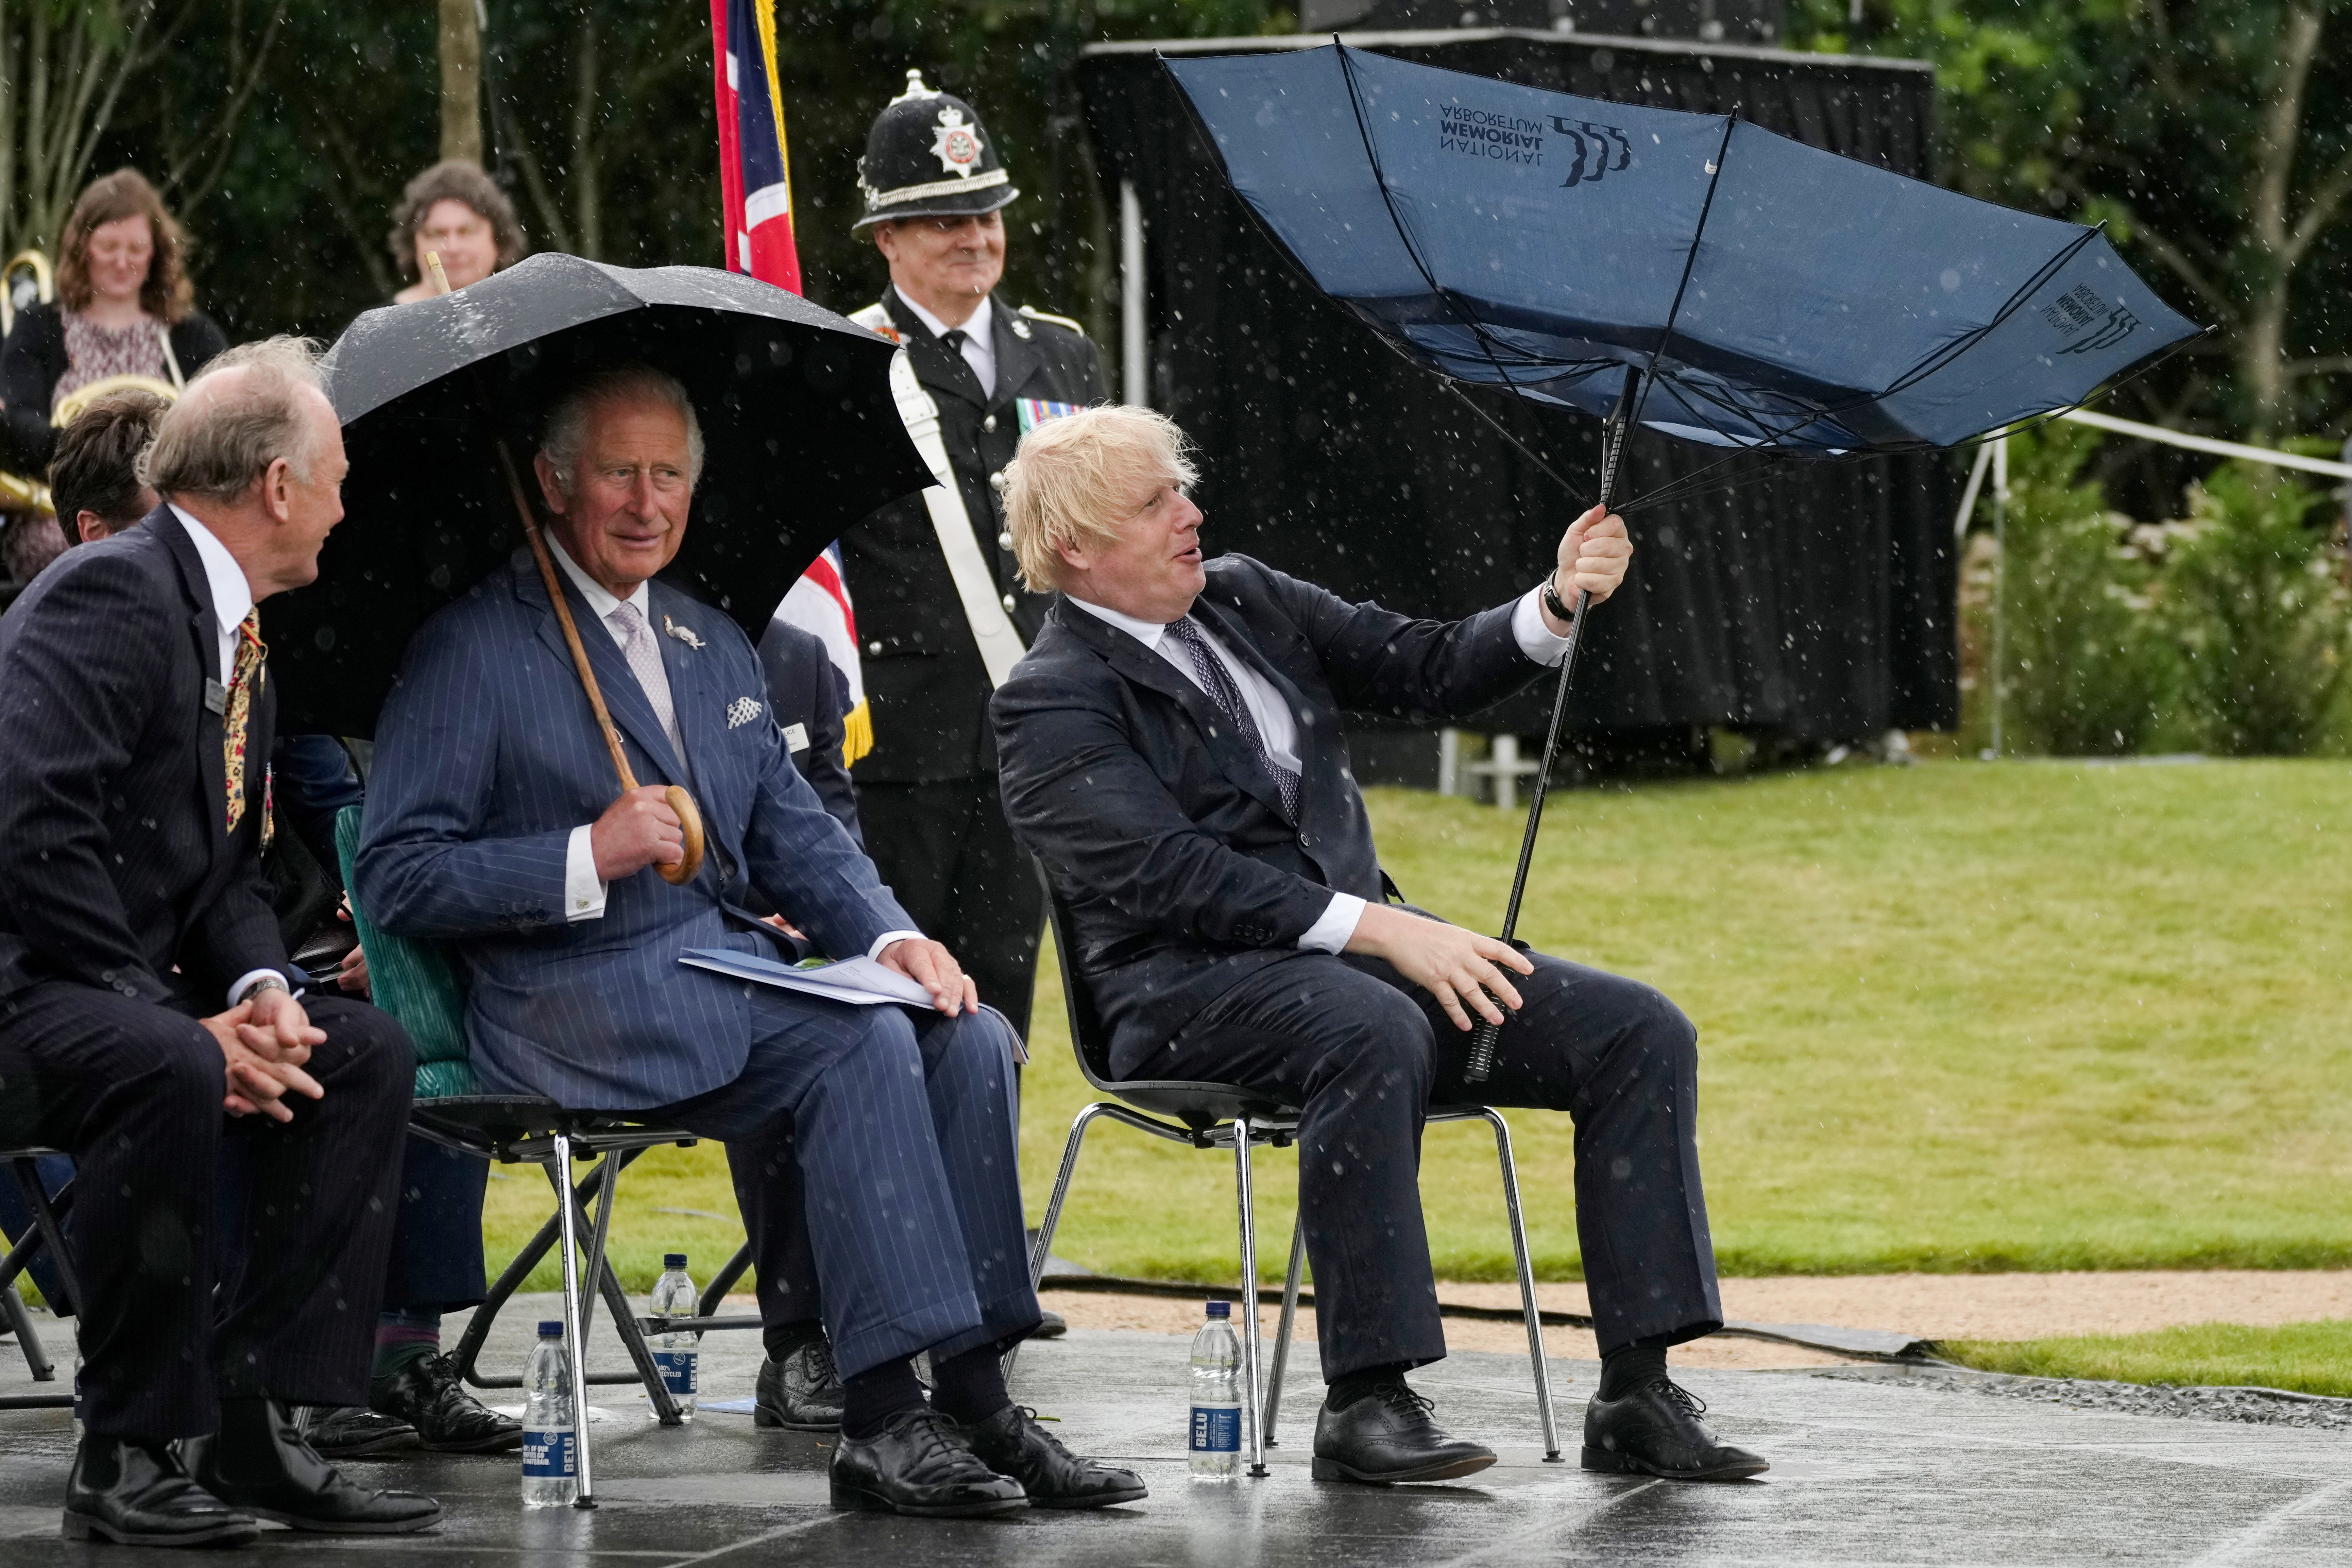 Britain's Prince Charles looks on as Prime Minister Boris Johnson opens his umbrella at the National Memorial Arboretum in Staffordshire, Britain July 28, 2021. Christopher Furlong/Pool via REUTERS